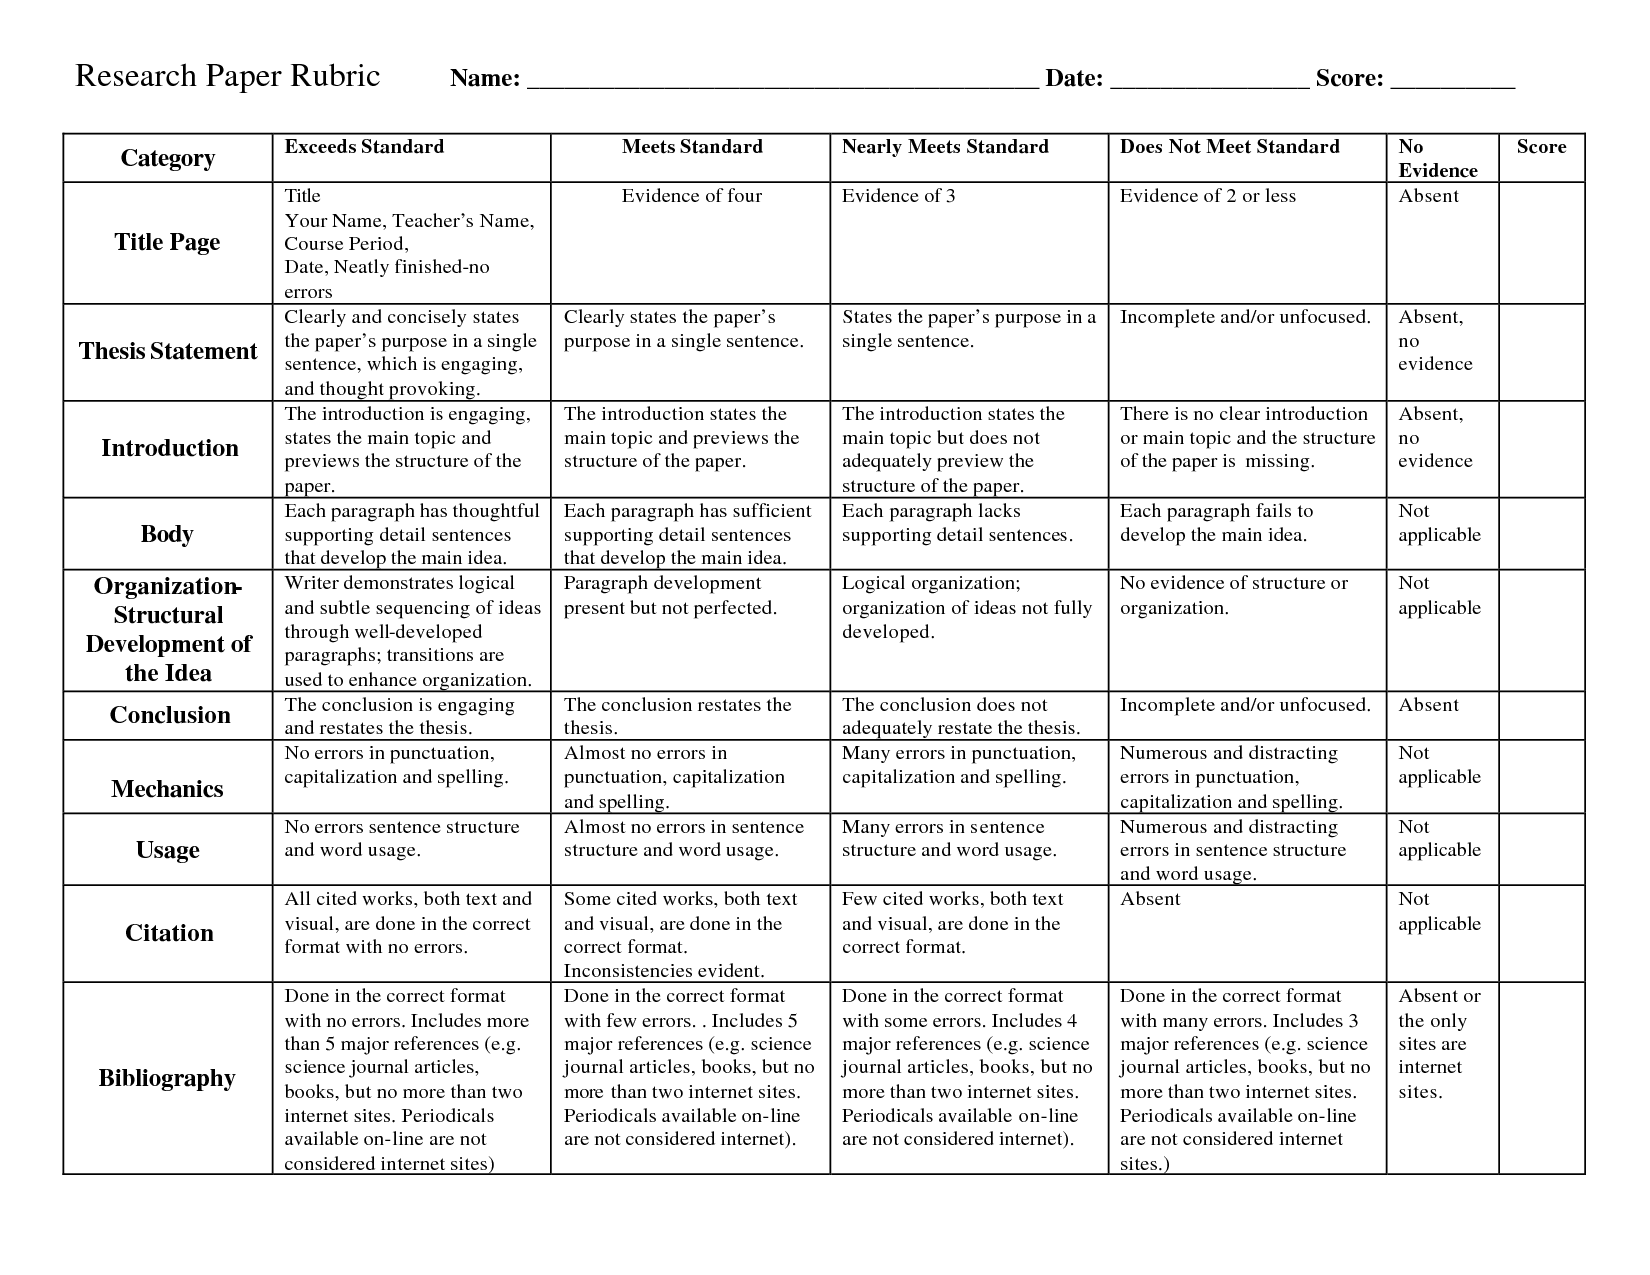 environmental research paper rubric Thesis/topic is clear and stated in introductory paragraph the main points that will be in paper are clearly stated a good hook or fact is also included to help engage reader.